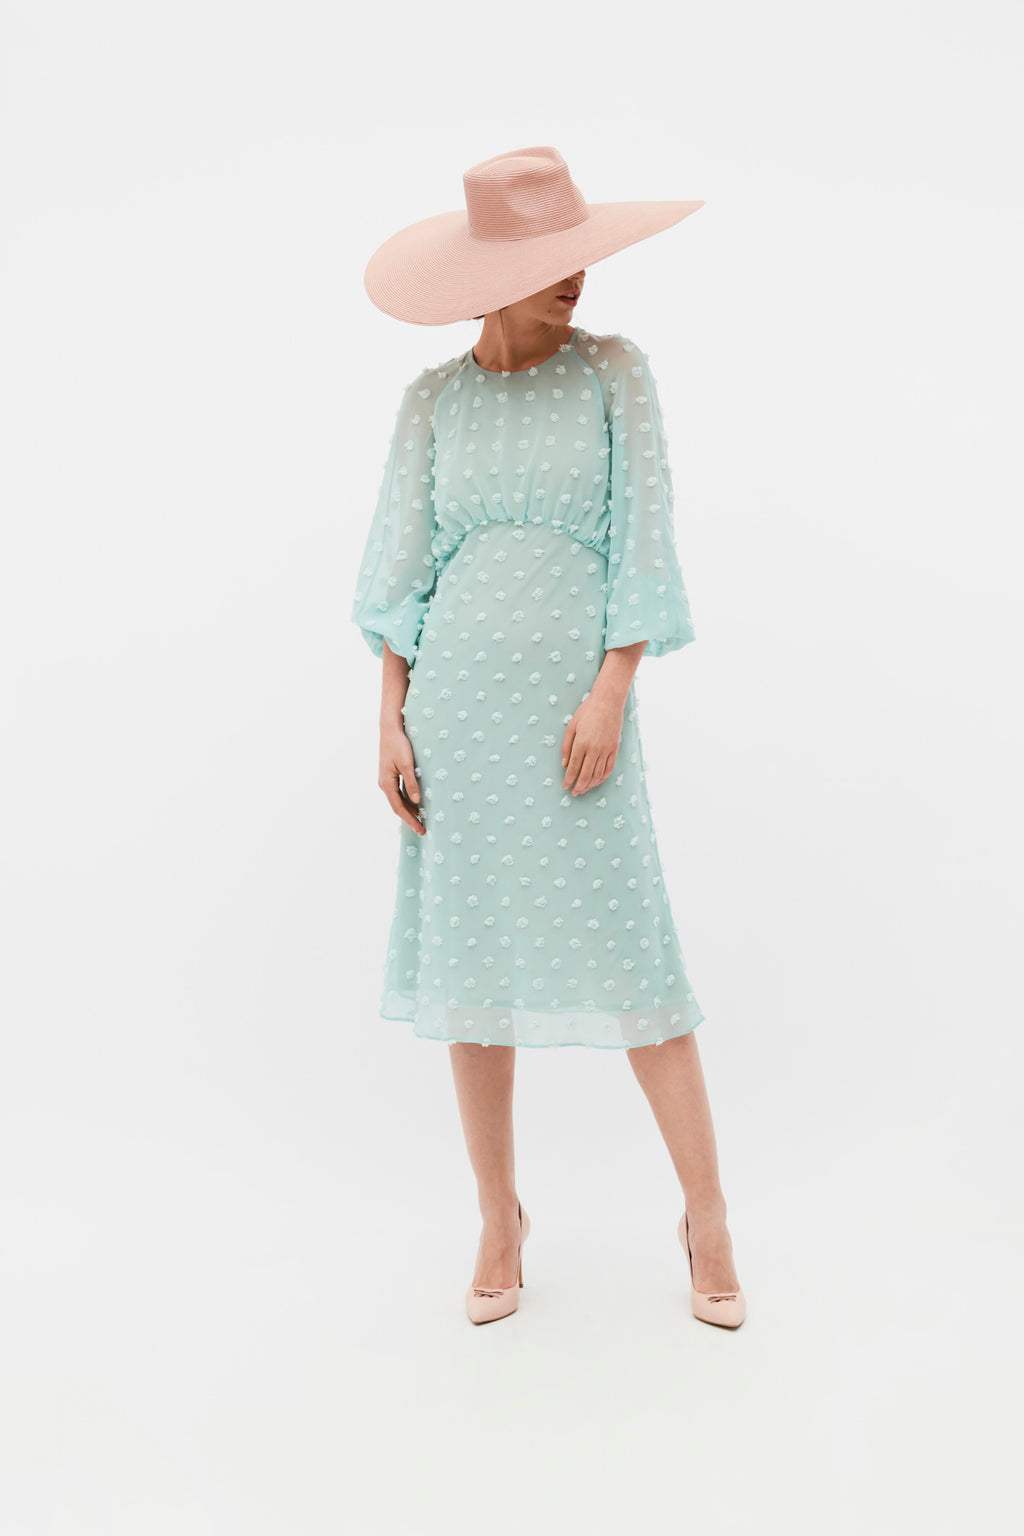 Molly Dress - Turquoise